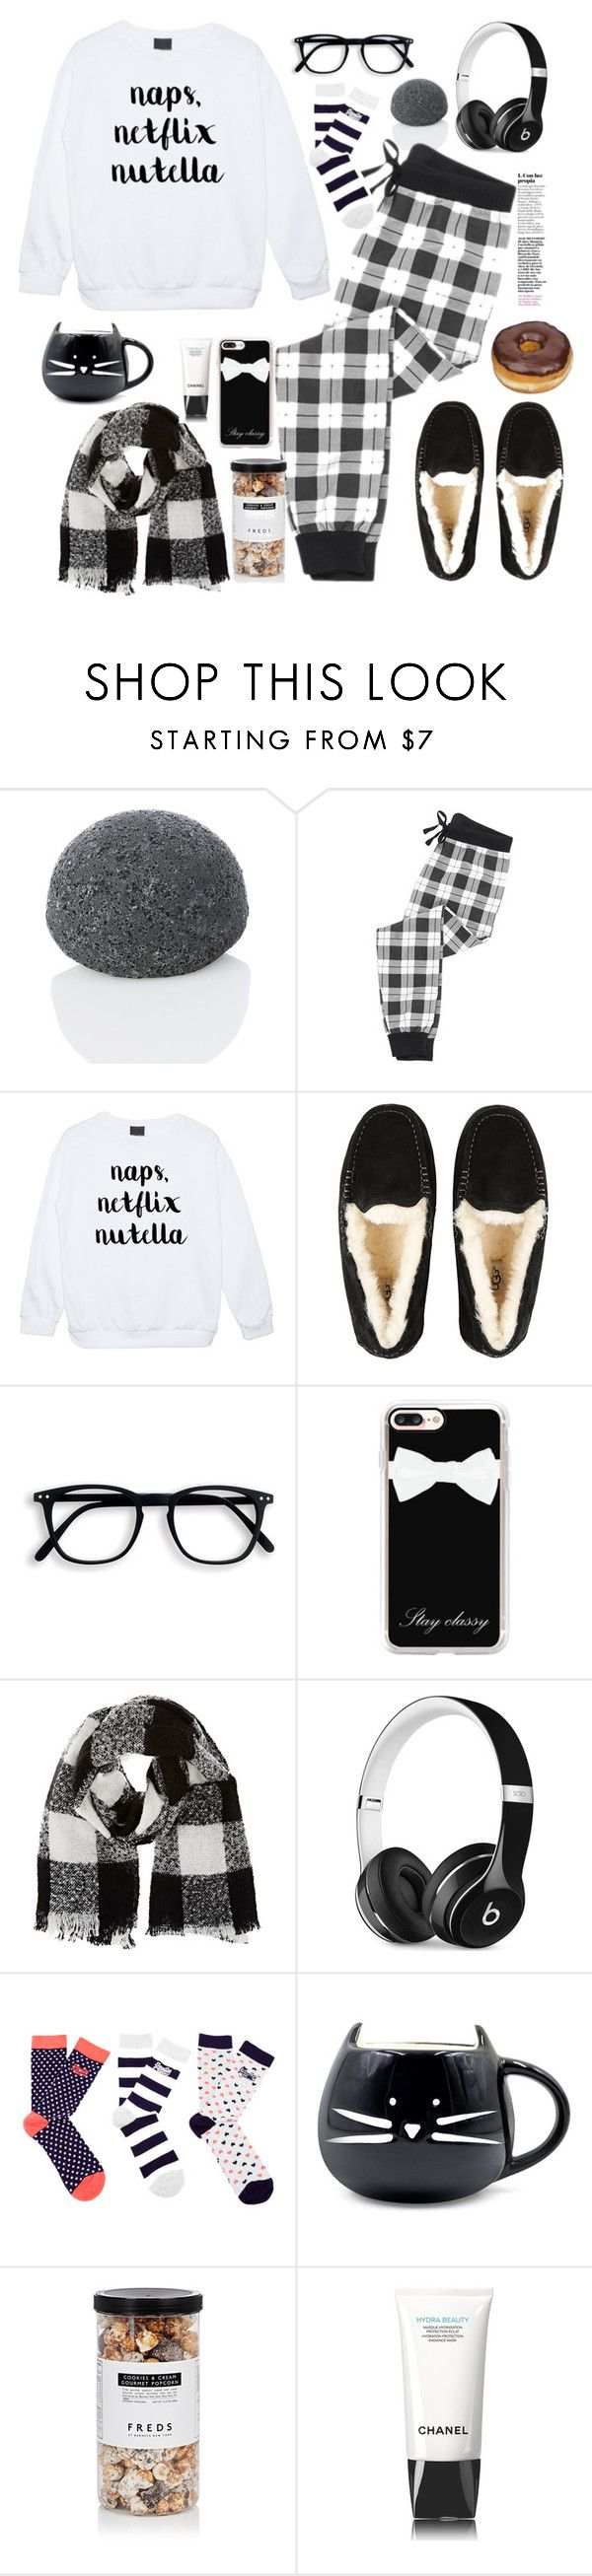 """Netflix & Chill"" by bamaannie ❤ liked on Polyvore featuring Festuvius, UGG, Casetify, Barneys New York, Beats by Dr. Dre, Superdry, FREDS at Barneys New York, cozy, netflix and cozychic"